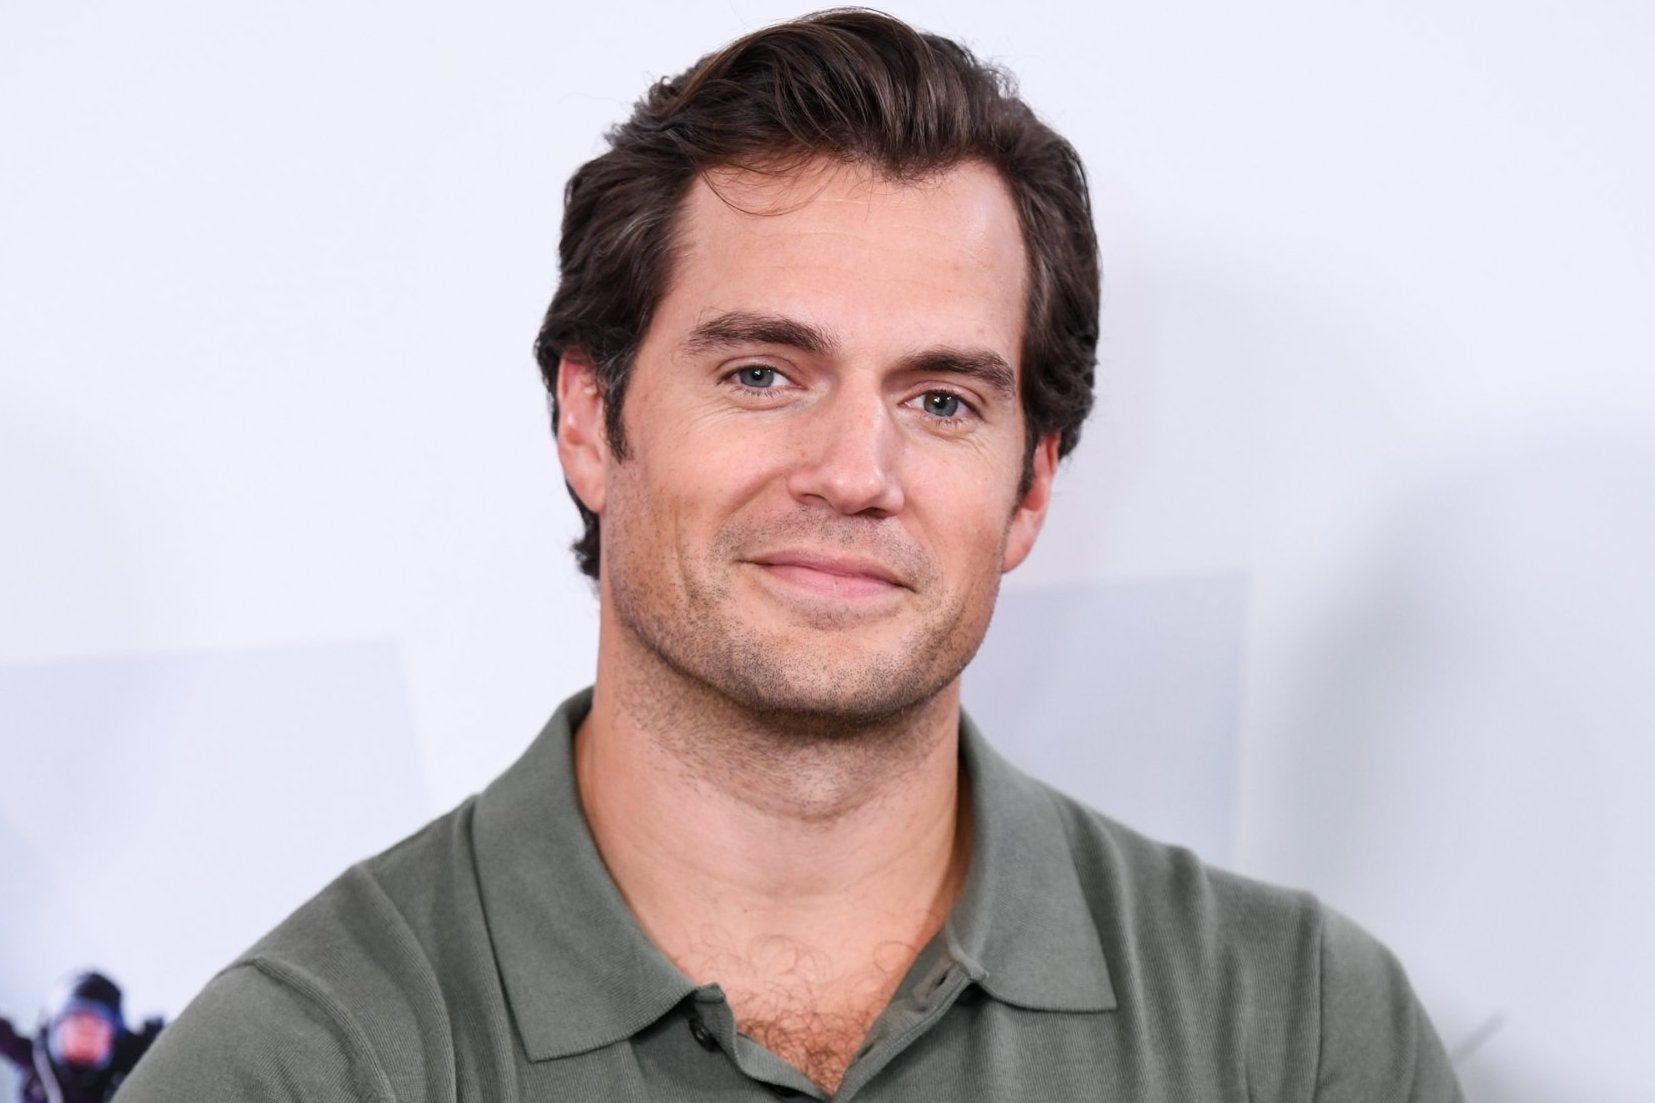 Henry Cavill to star in Witcher series for Netflix | The ...